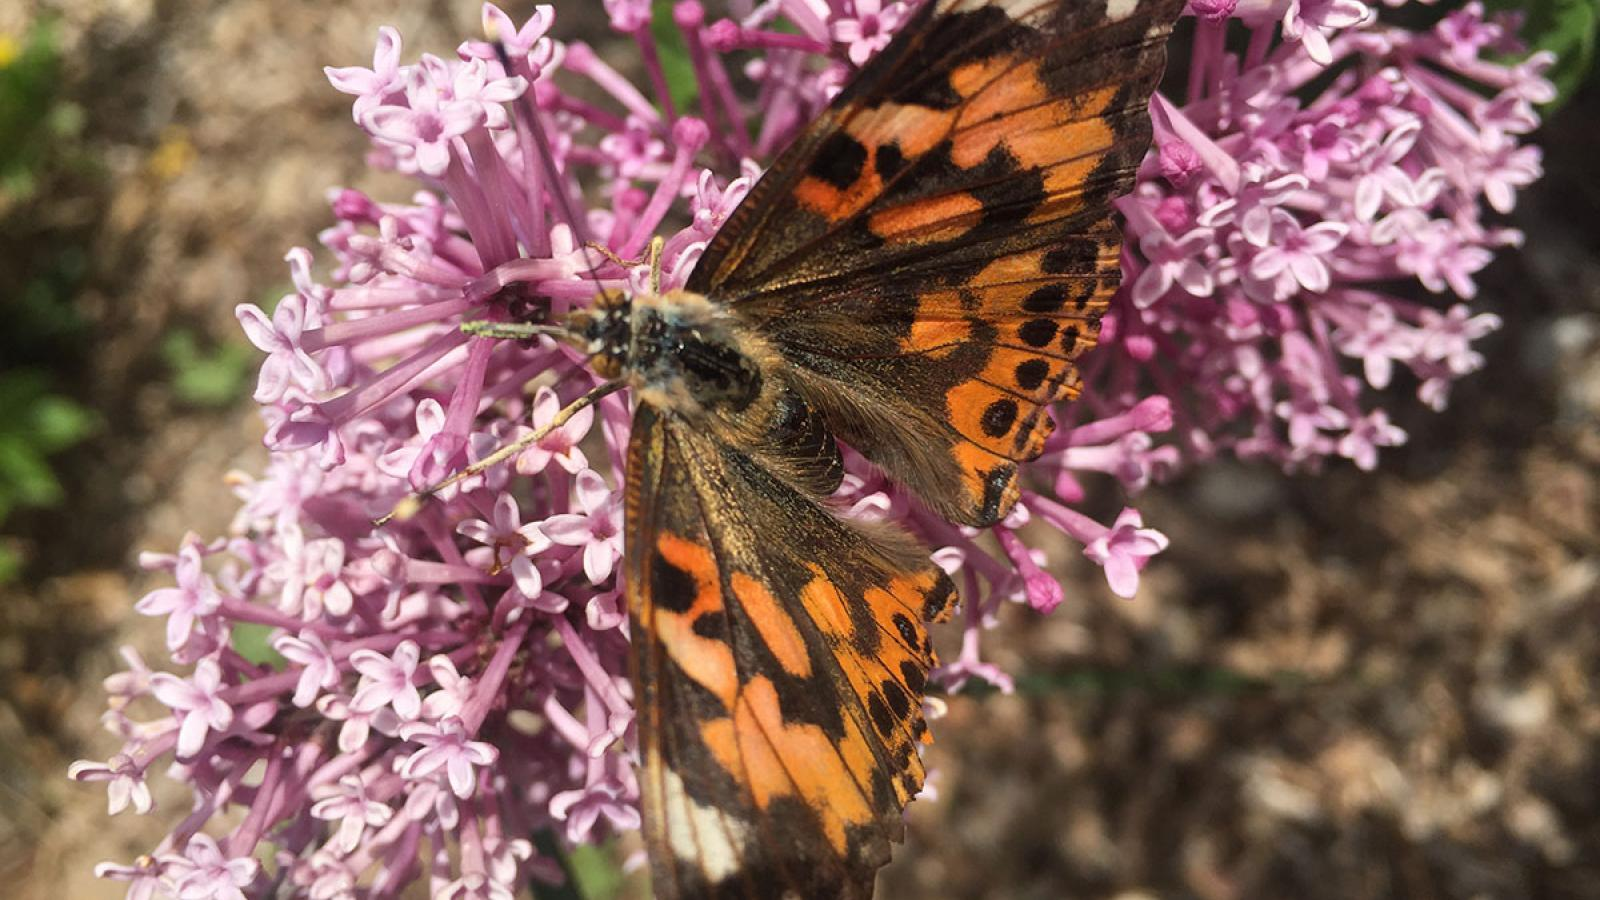 Photograph of a released Painted Lady butterfly on a lilac after the completion of our WOW Insect Unit